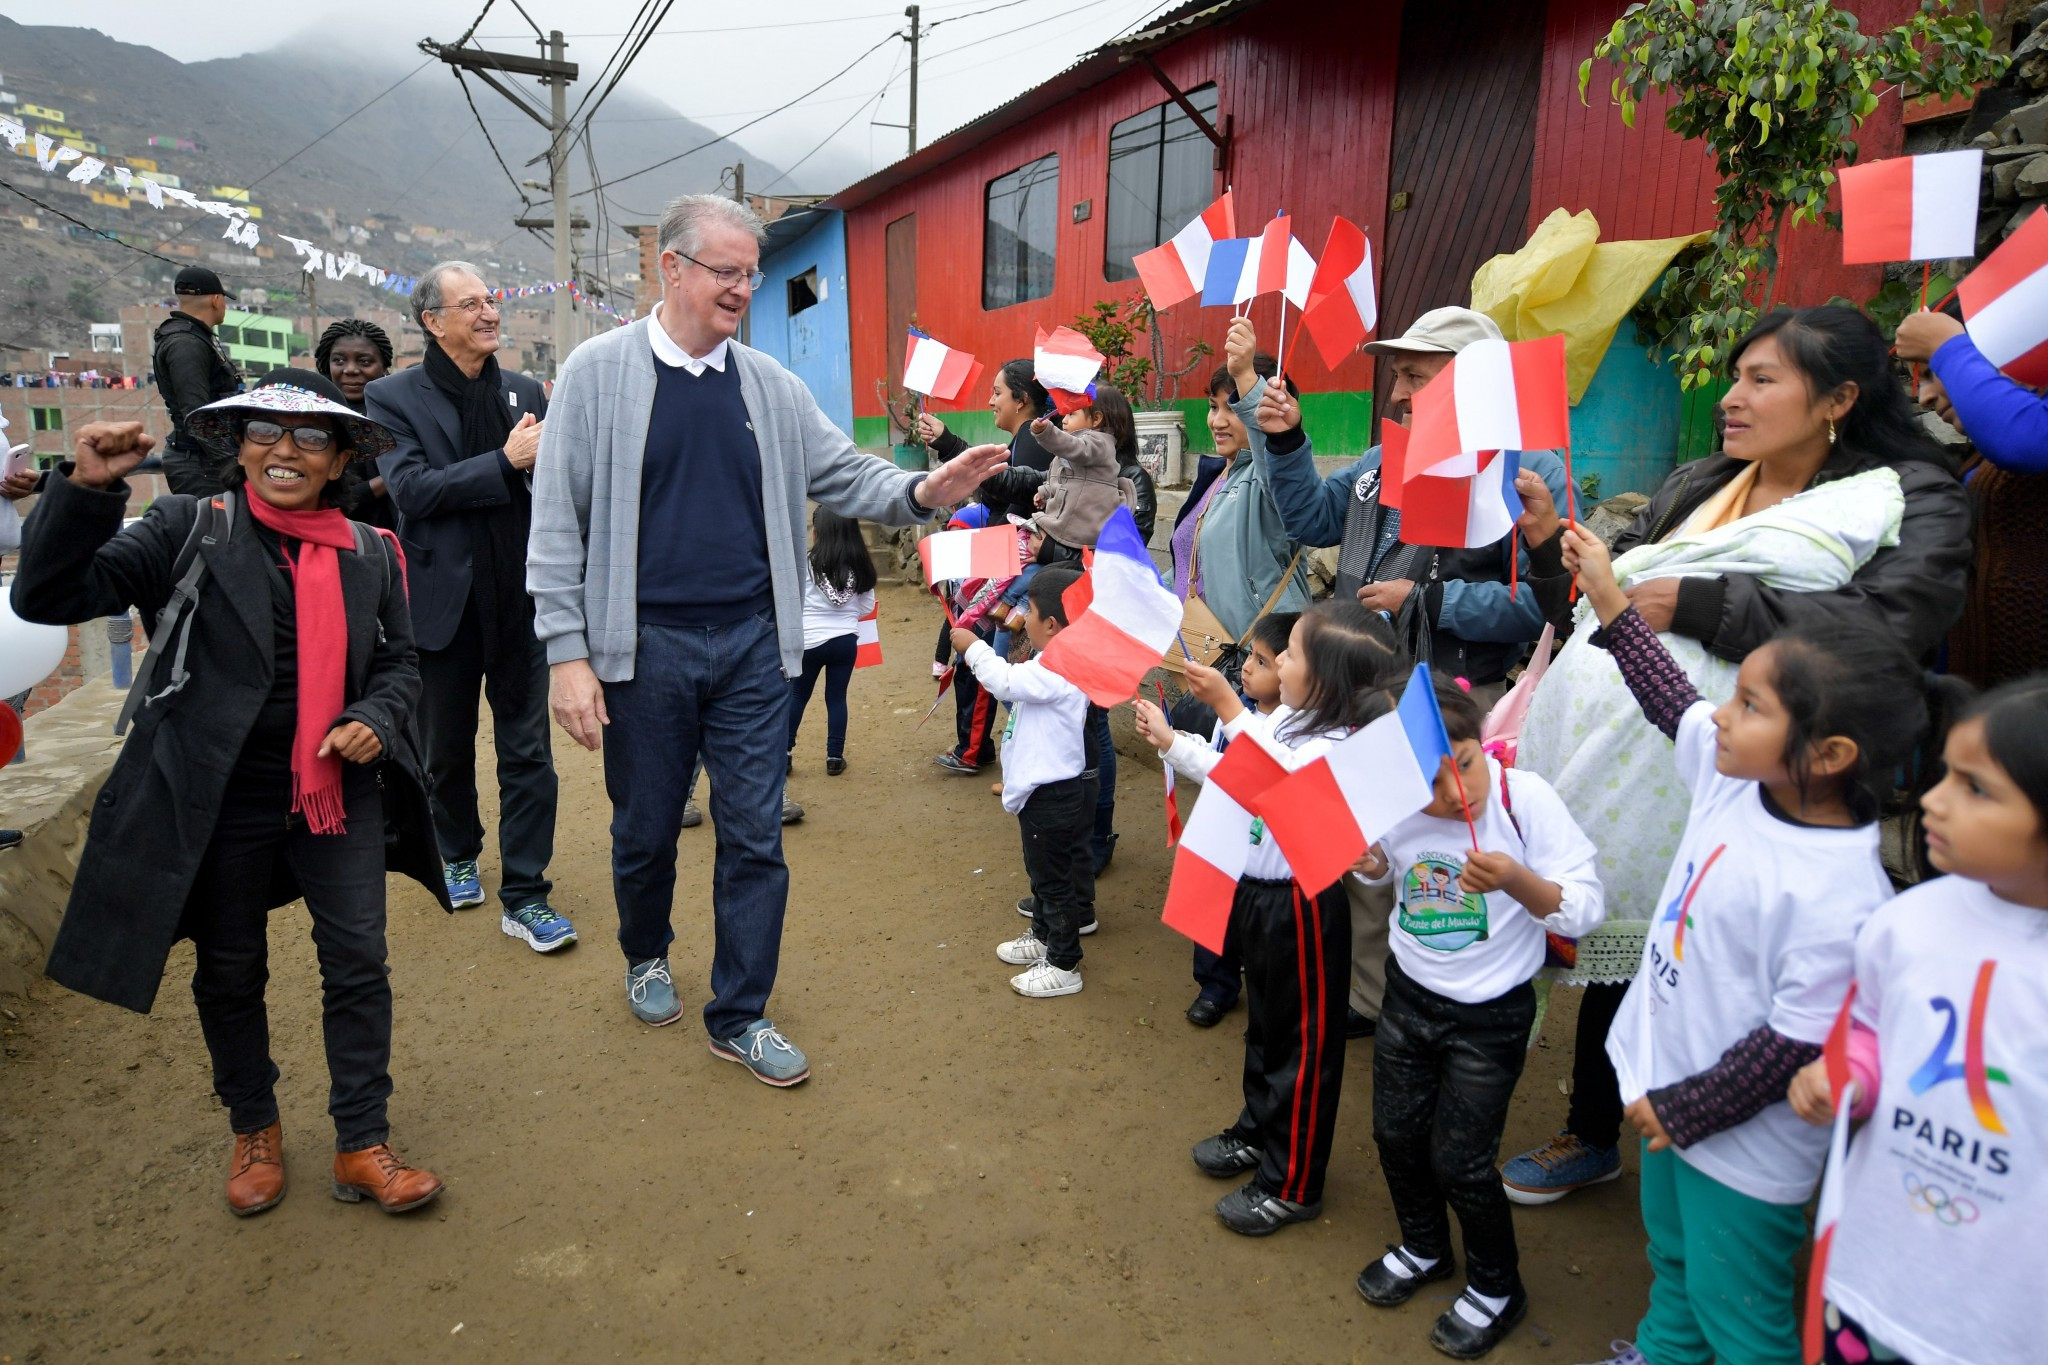 Paris 2024 pledge to continue supporting projects worldwide after visiting Lima initiative